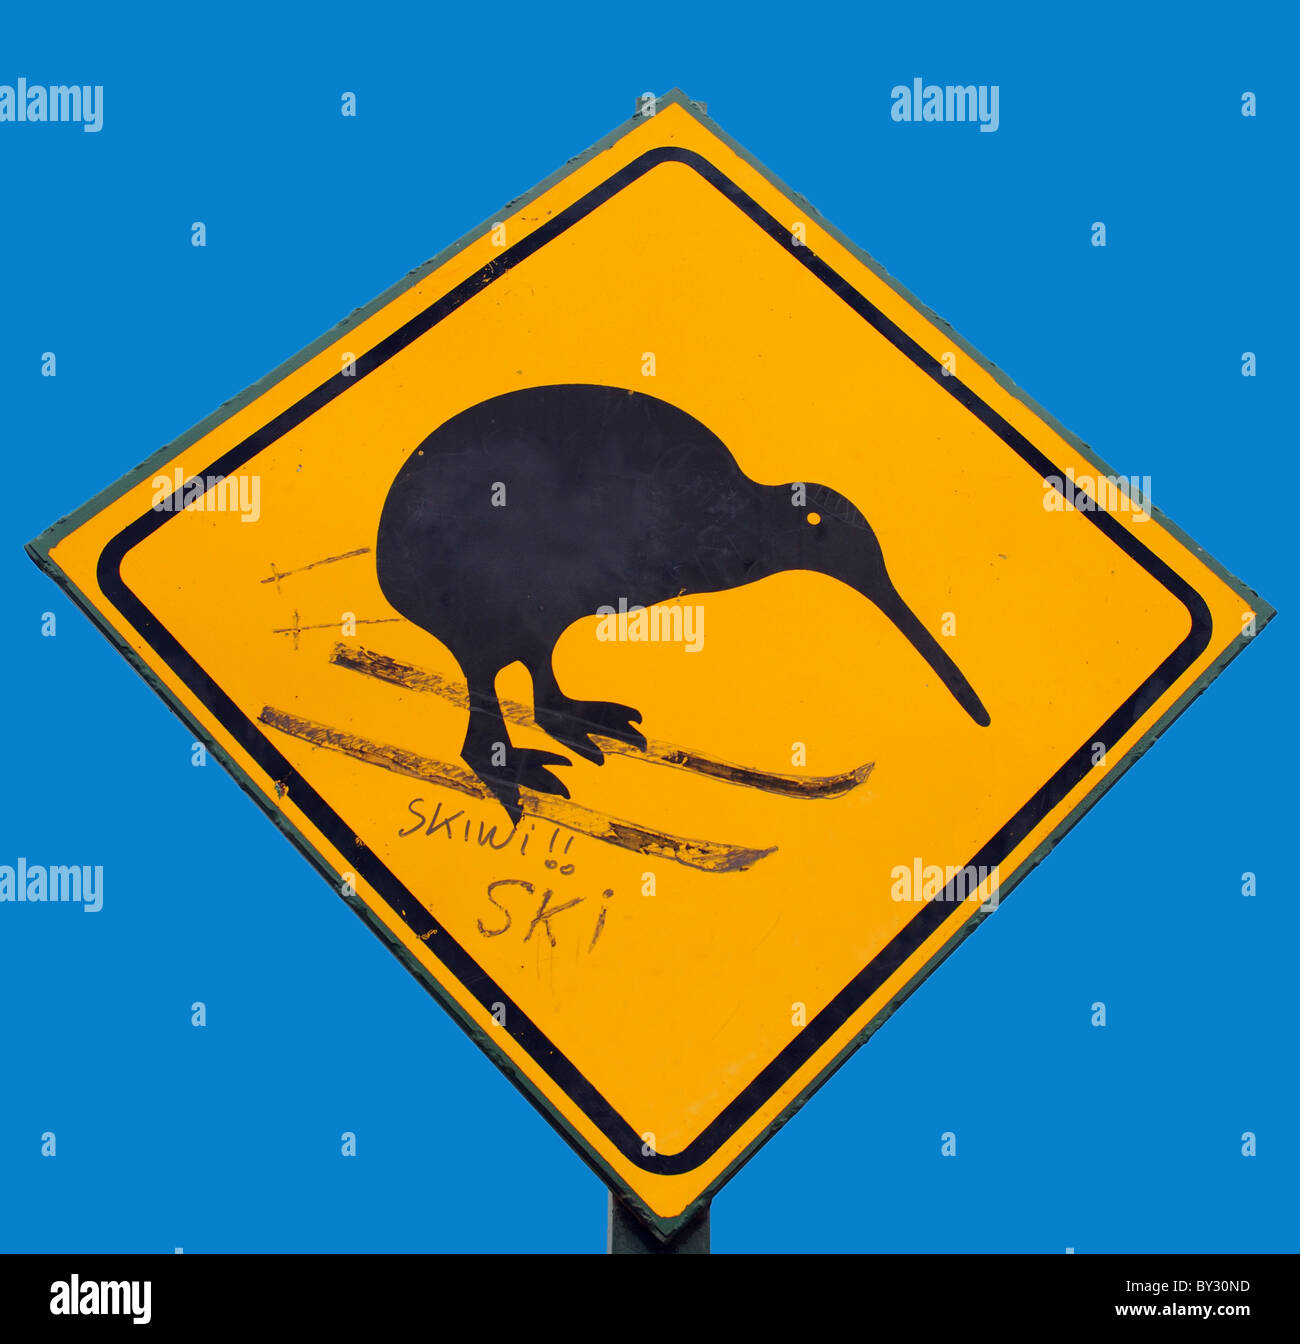 A skiwi,  a road sign for a kiwi altered to show the kiwi ski-ing in new zealand - Stock Image